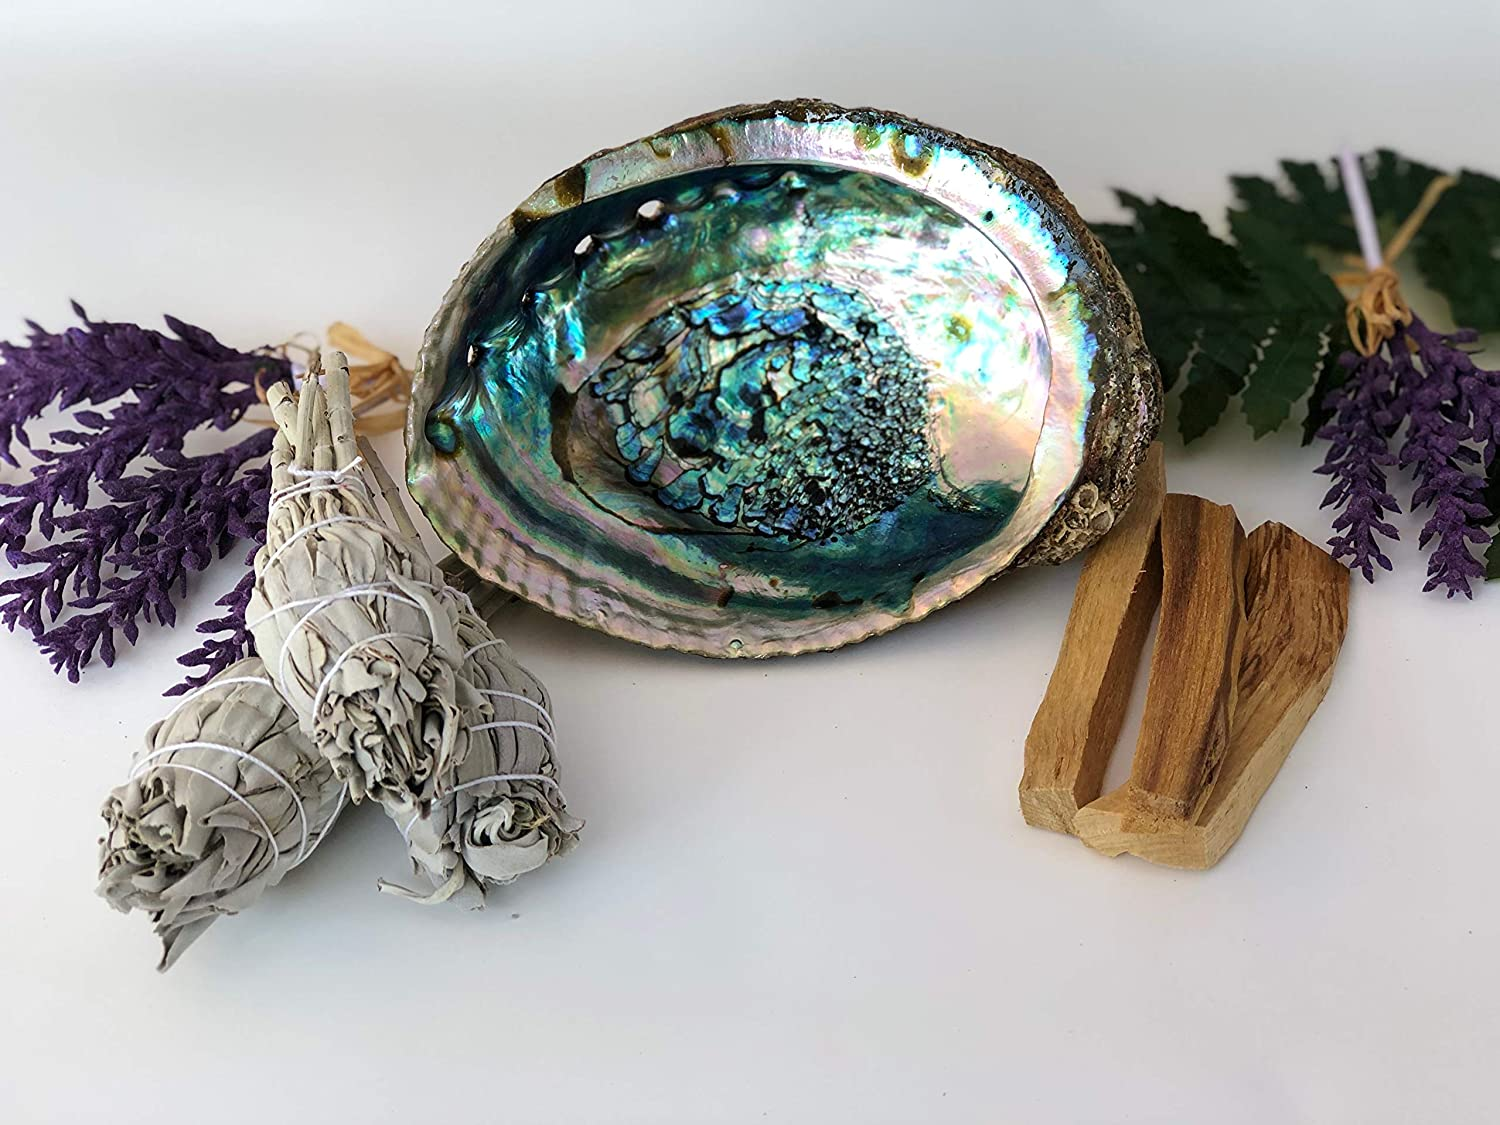 SMUDGING KIT Sticks - Sage Incense Sticks for Spiritual Chakra Cleansing, White Sage, Palo Santo & Abalone Shell for Healing Incense, Protection, Good Luck & Prosperity, Home Cleansing & Blessing Kit